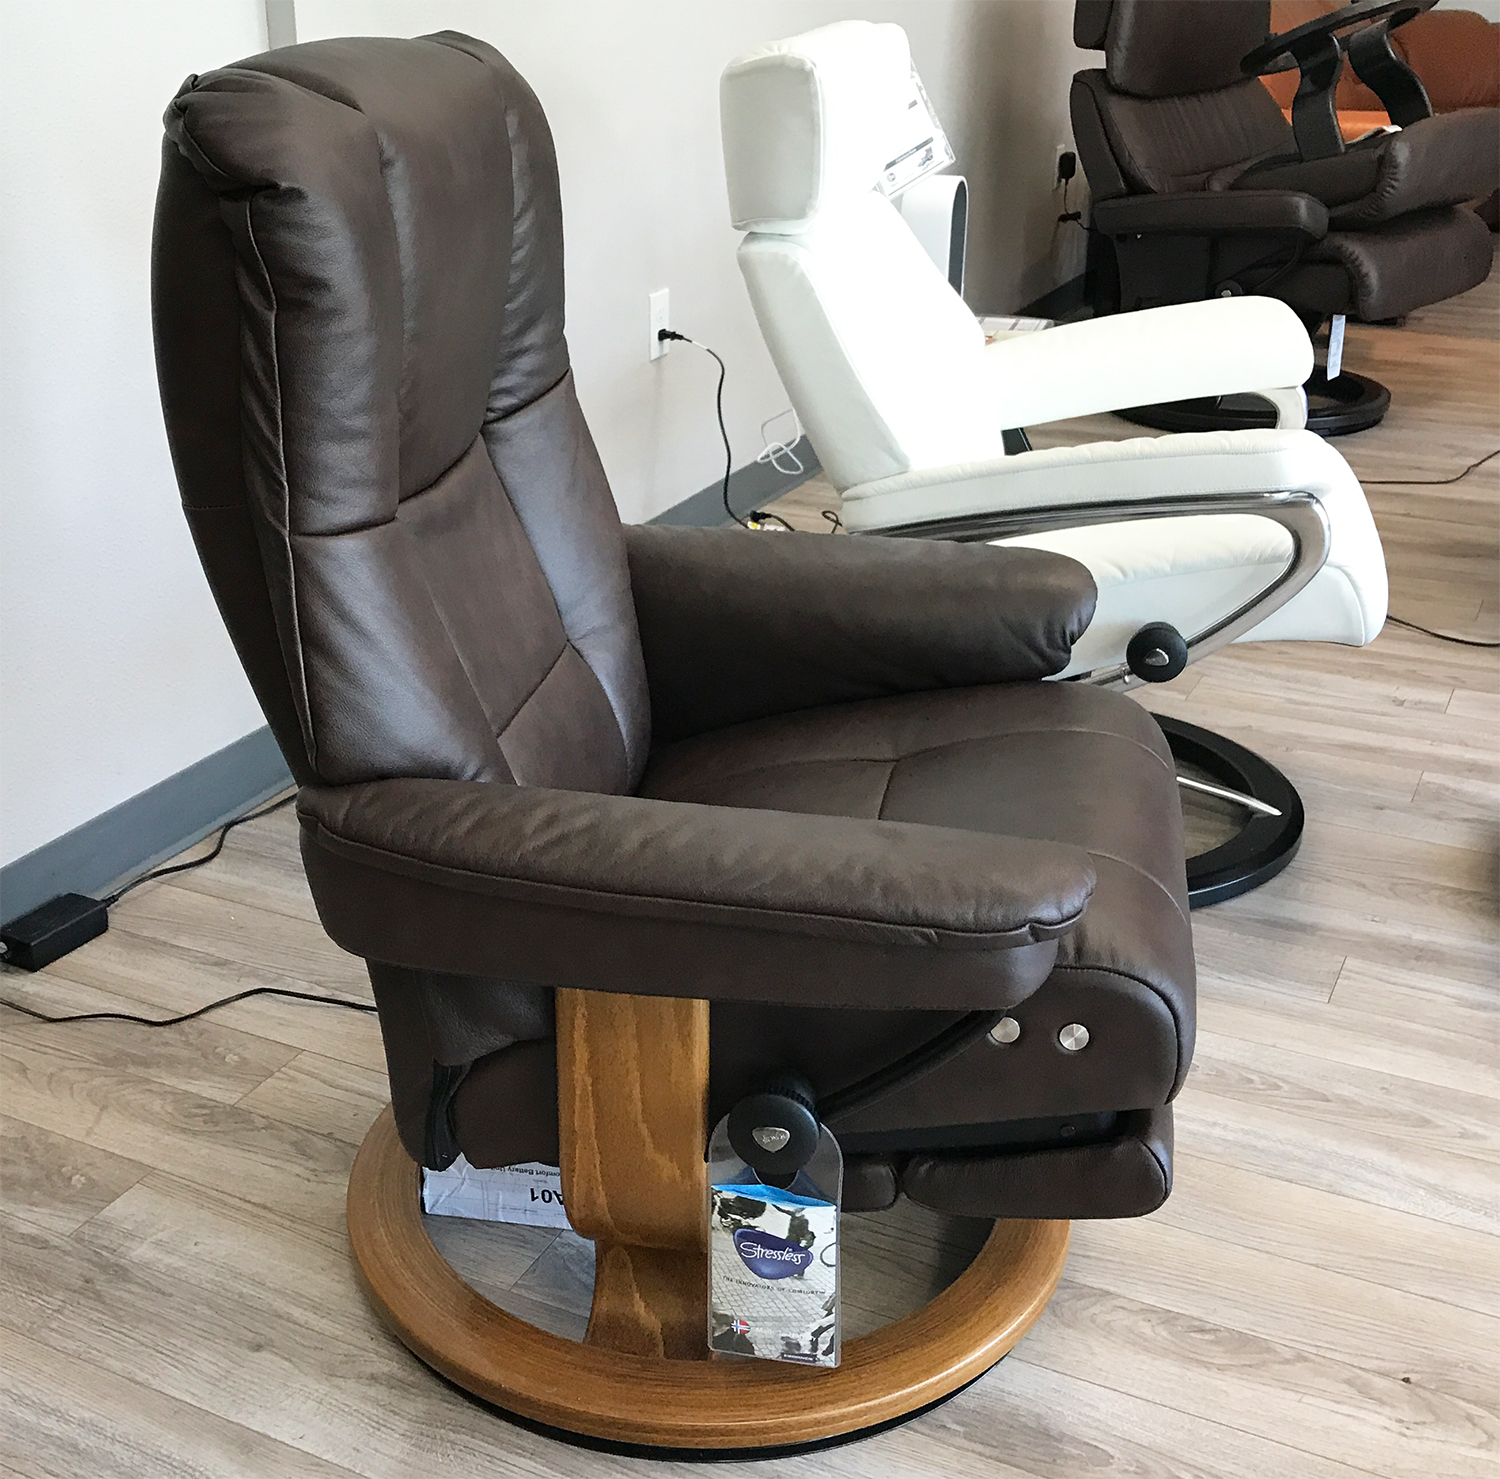 Stressless Mayfair Leg fort Paloma Chocolate Leather Recliner